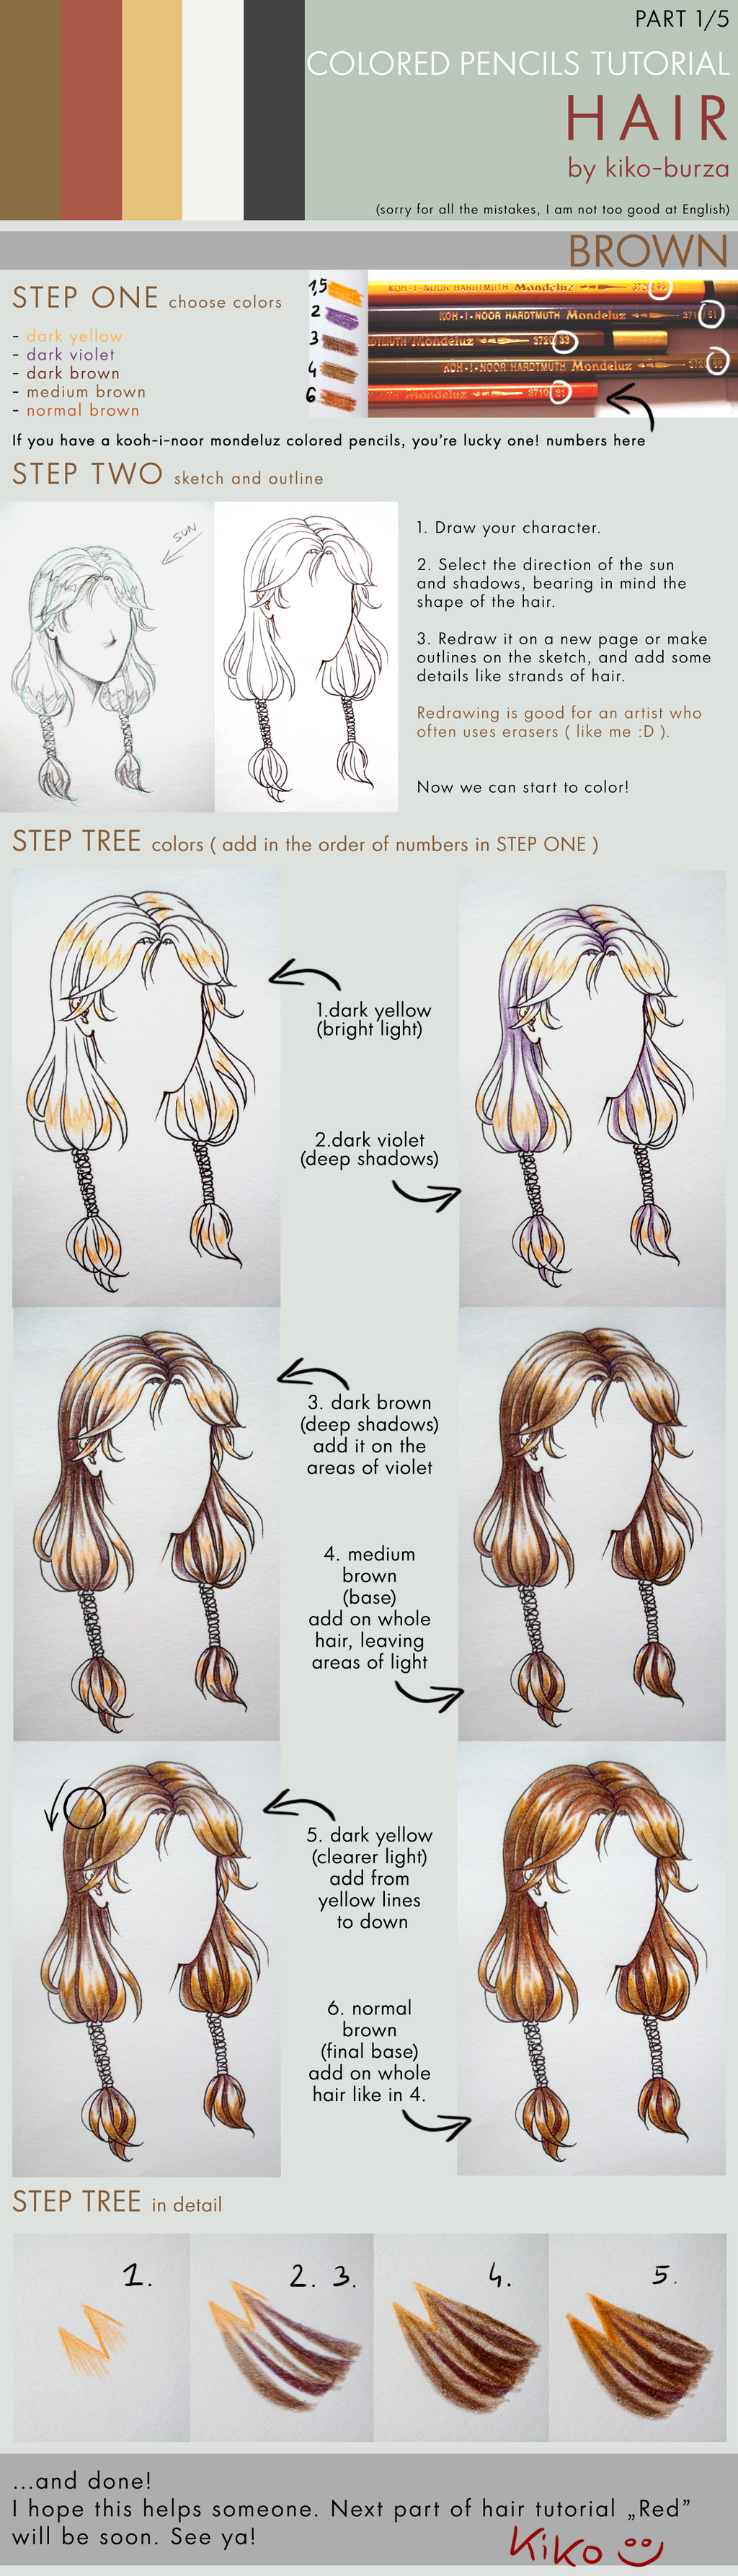 Tutorial - Working in Layers with Colored Pencils step by step ...